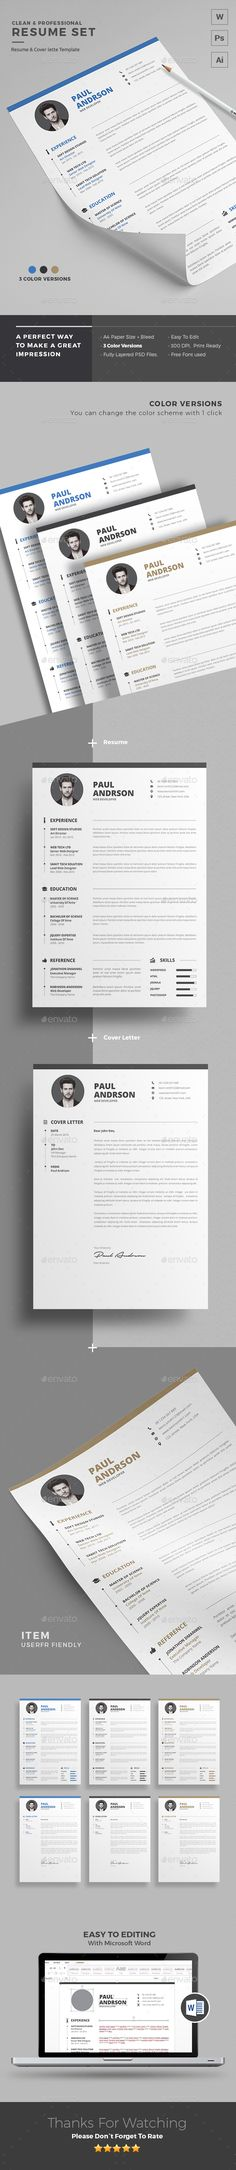 Resume Cv template, Resume cv and Adobe illustrator - http resume download